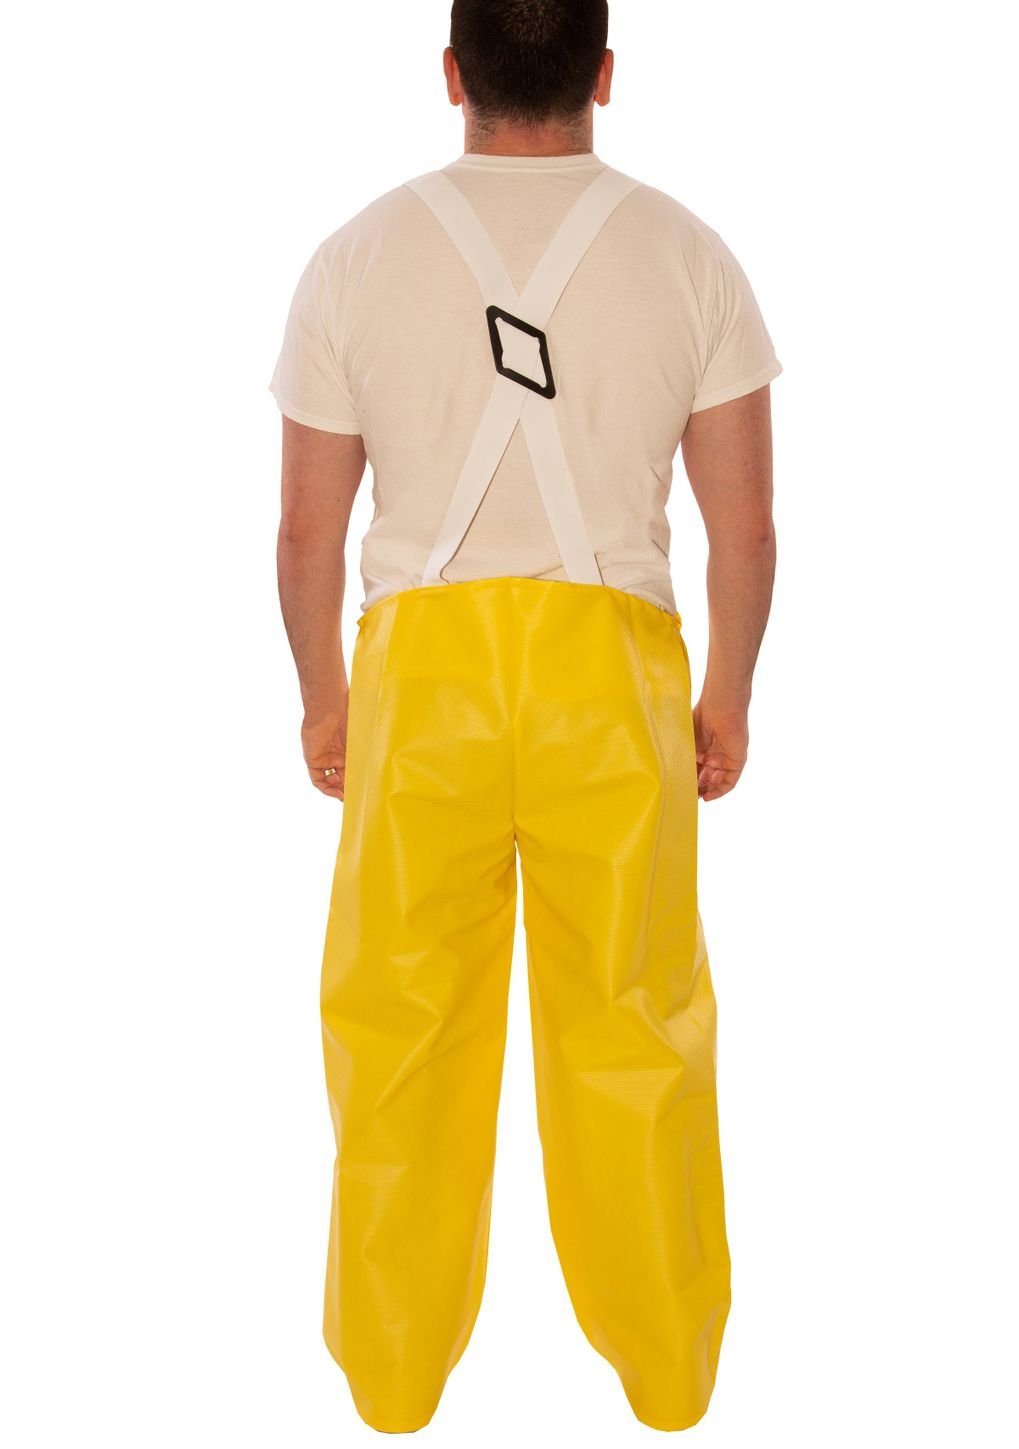 tingley-o31107-webdri-chemical-resistant-overalls-pvc-coated-tear-resistant-snap-fly-front-back.jpg